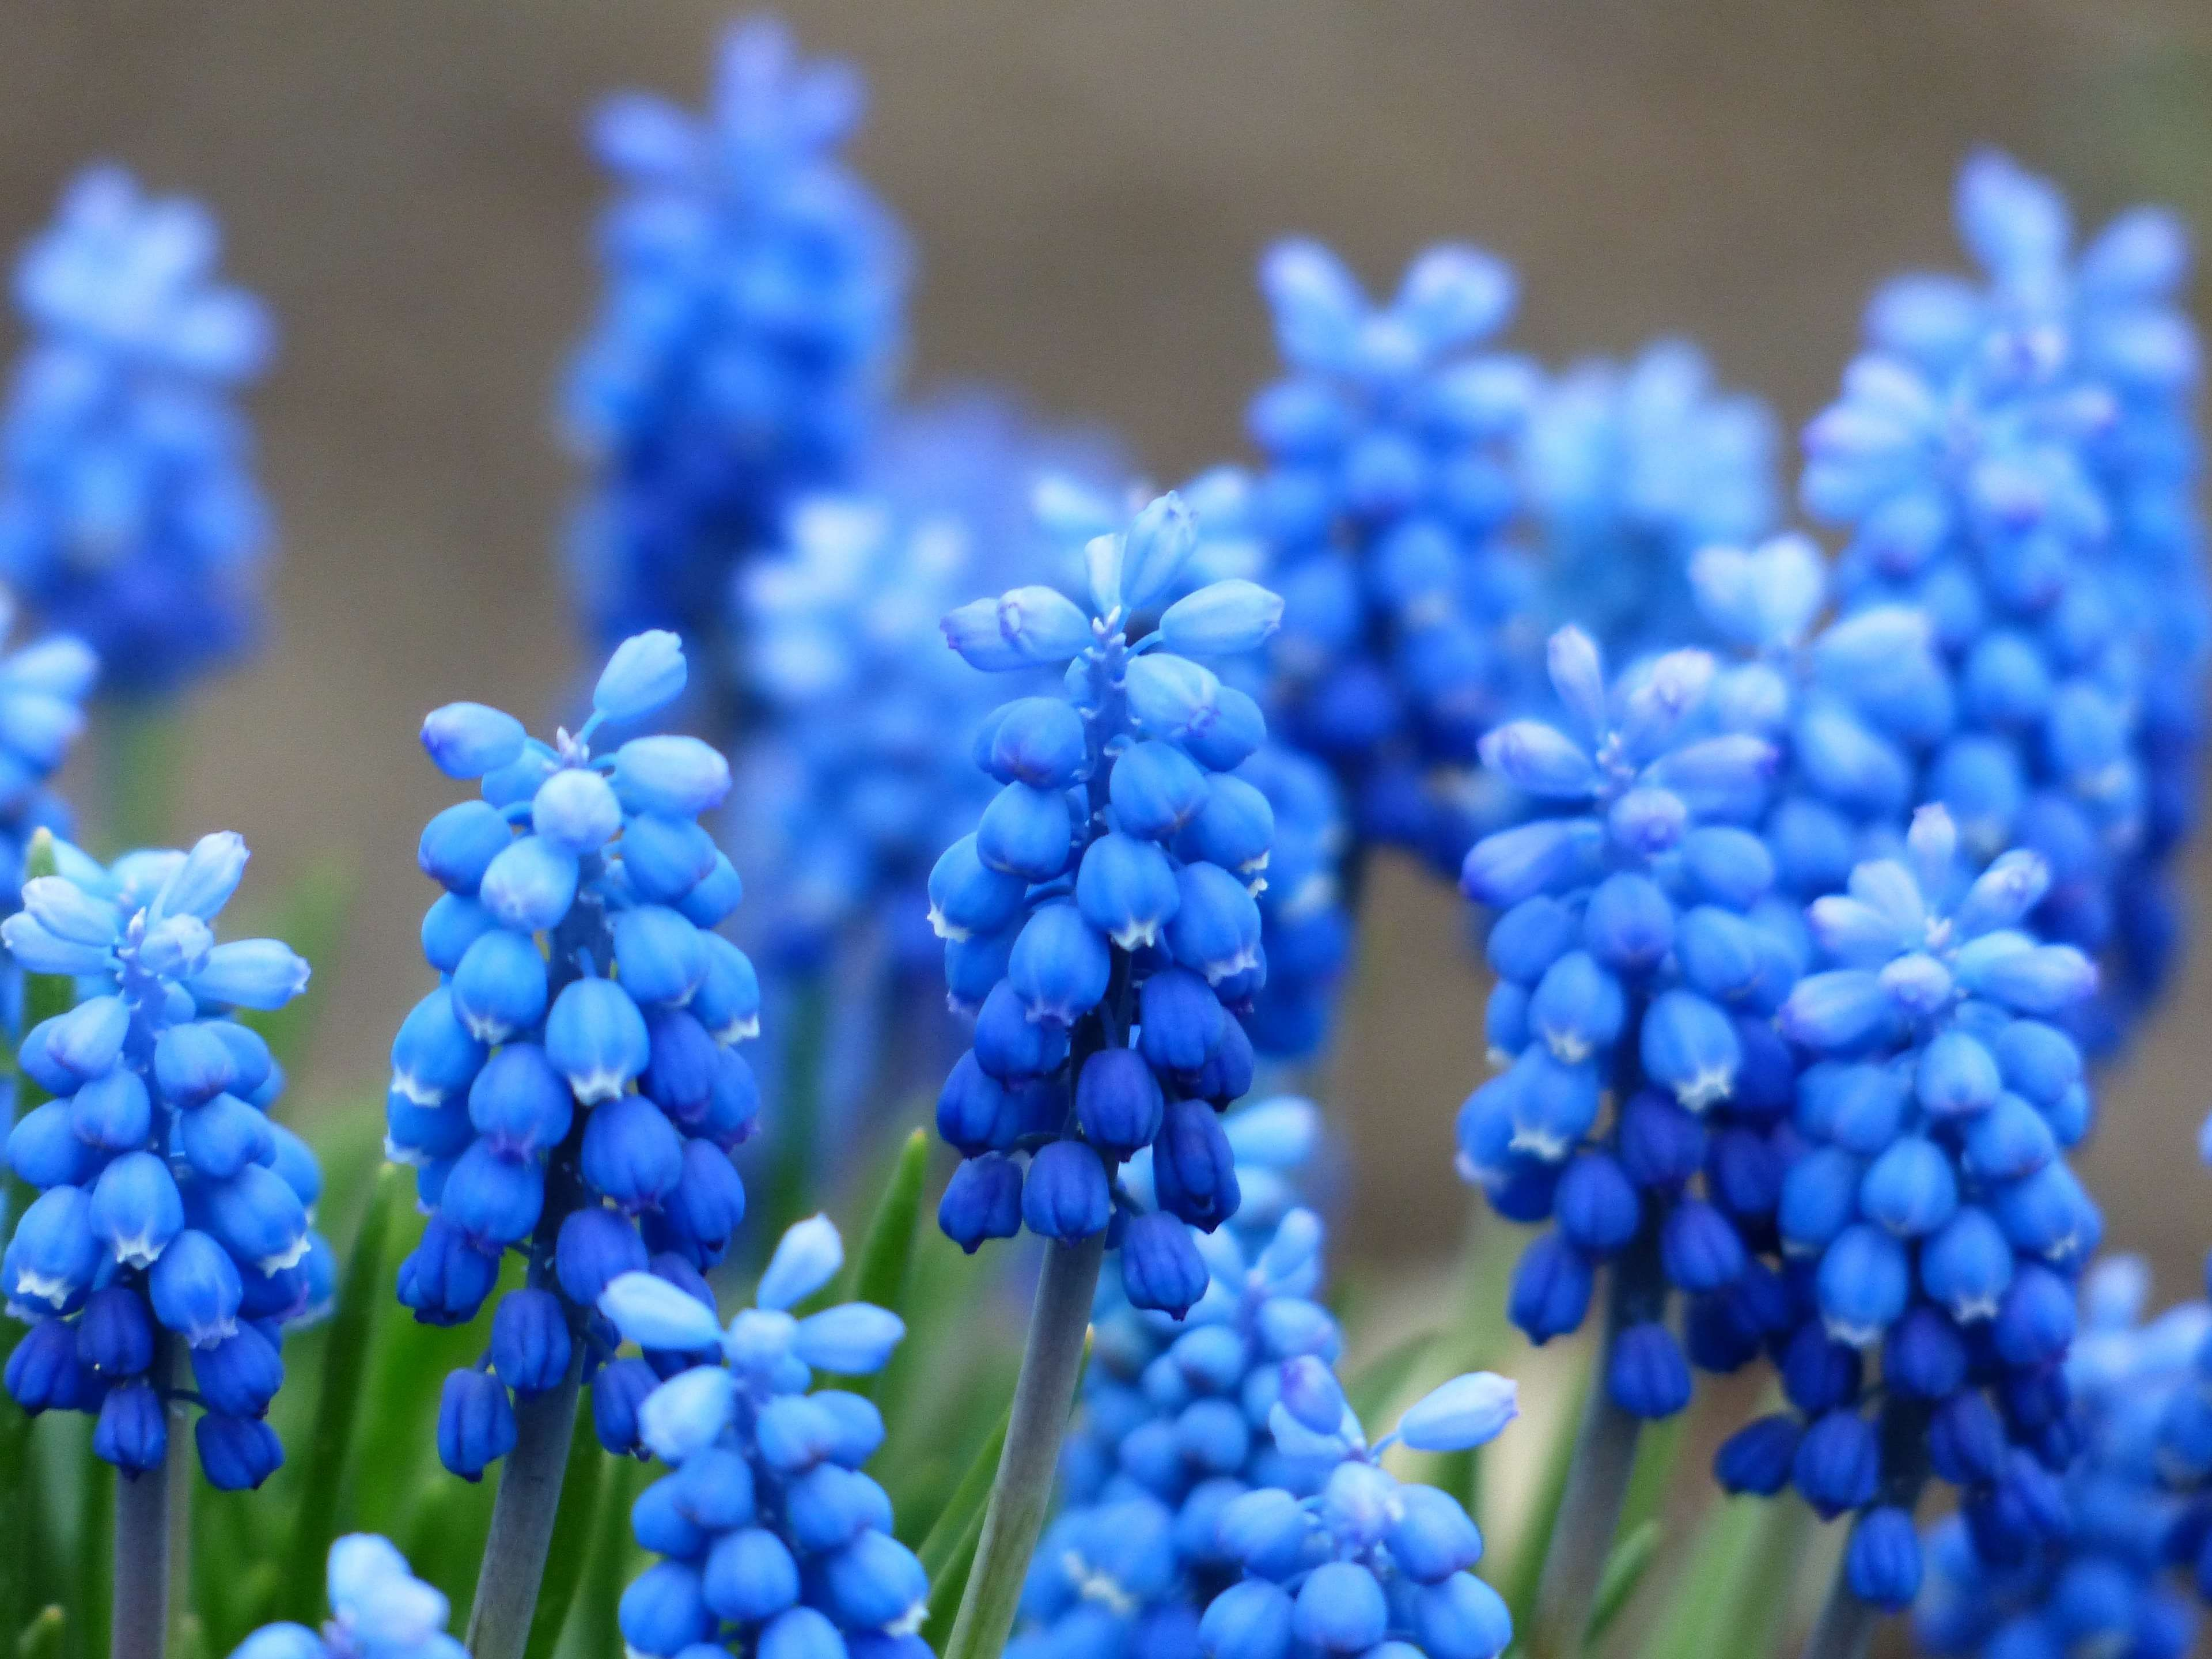 Asparagaceae Asparagus Plant Bell Bloom Blossom Blue Bright Colorful Common Grape Hyaci Types Of Blue Flowers Spring Flowers Background Spring Flowers